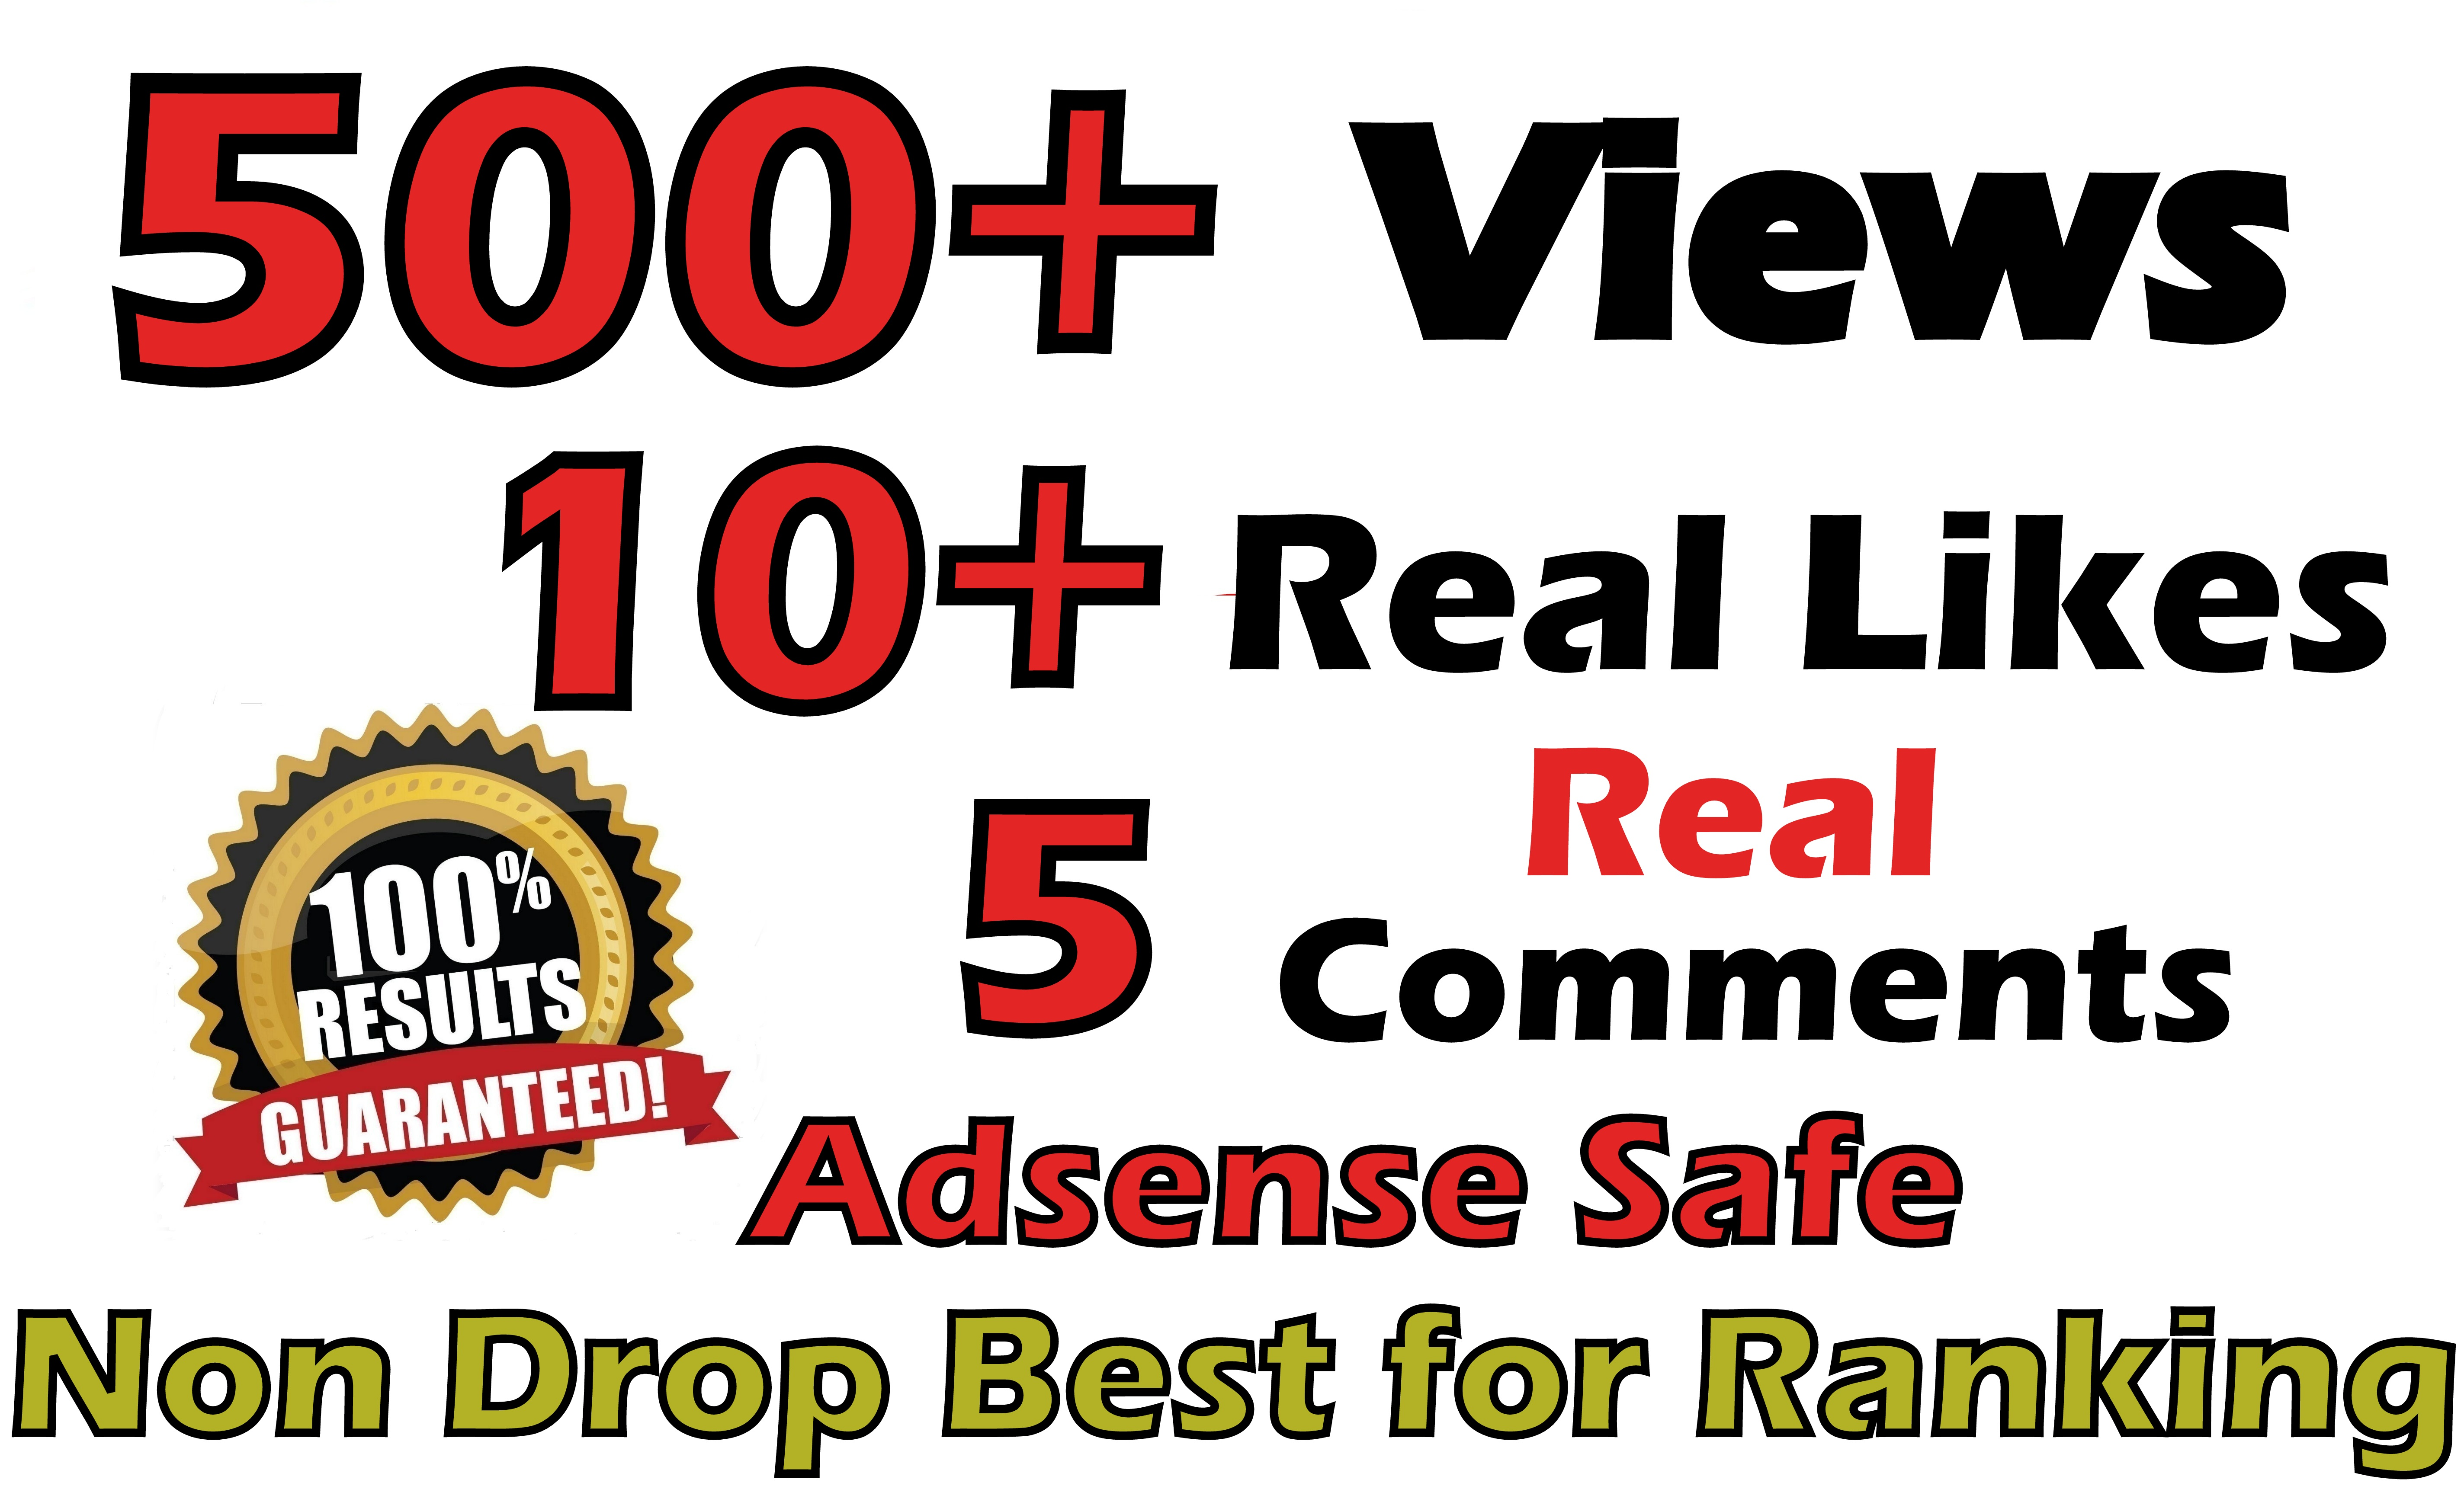 Non Drop Adsense Safe video Marketing Best for Ranking